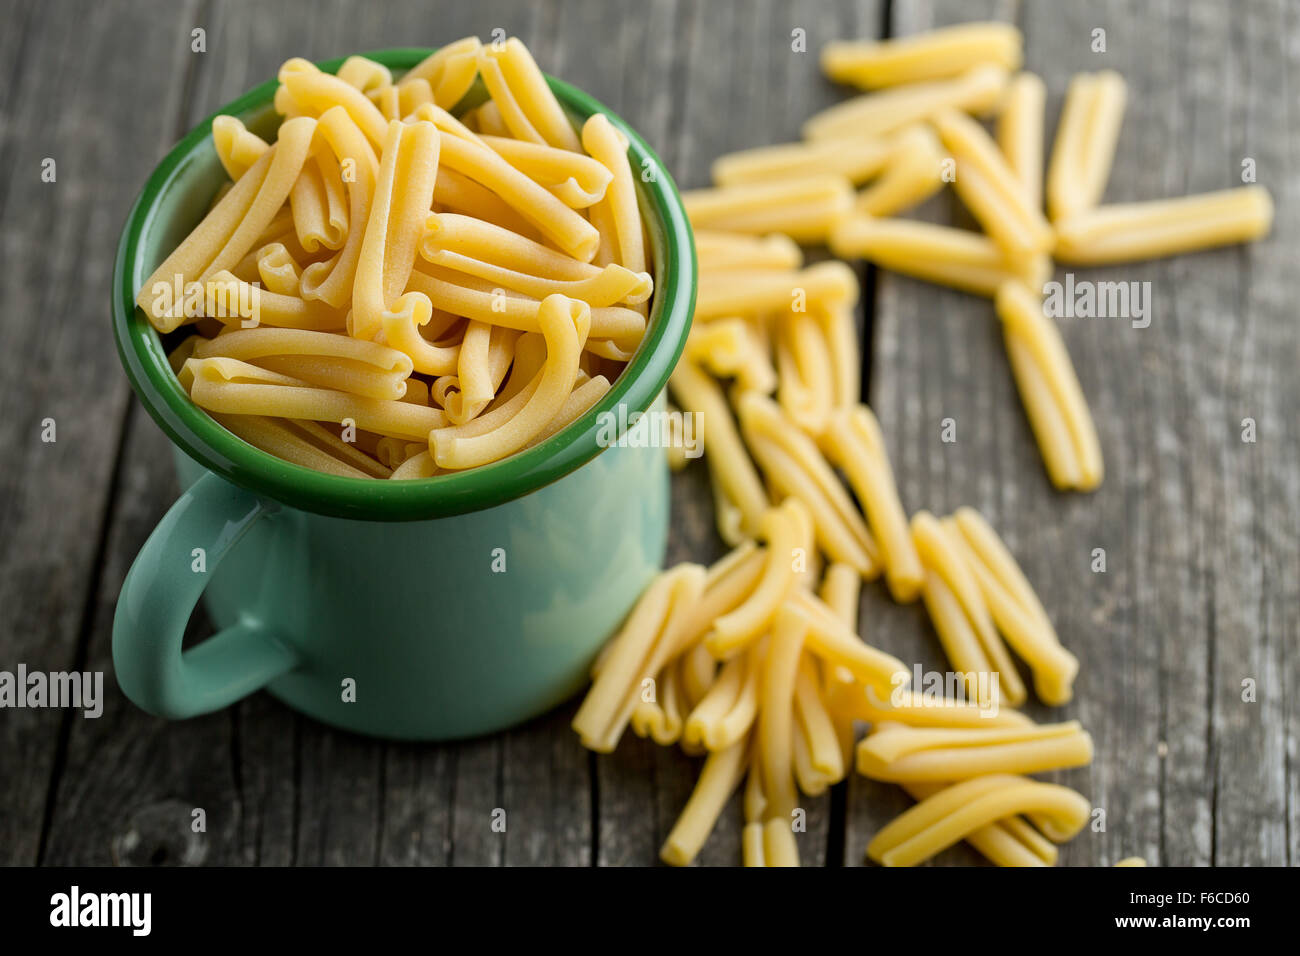 uncooked pasta caserecce in cup - Stock Image